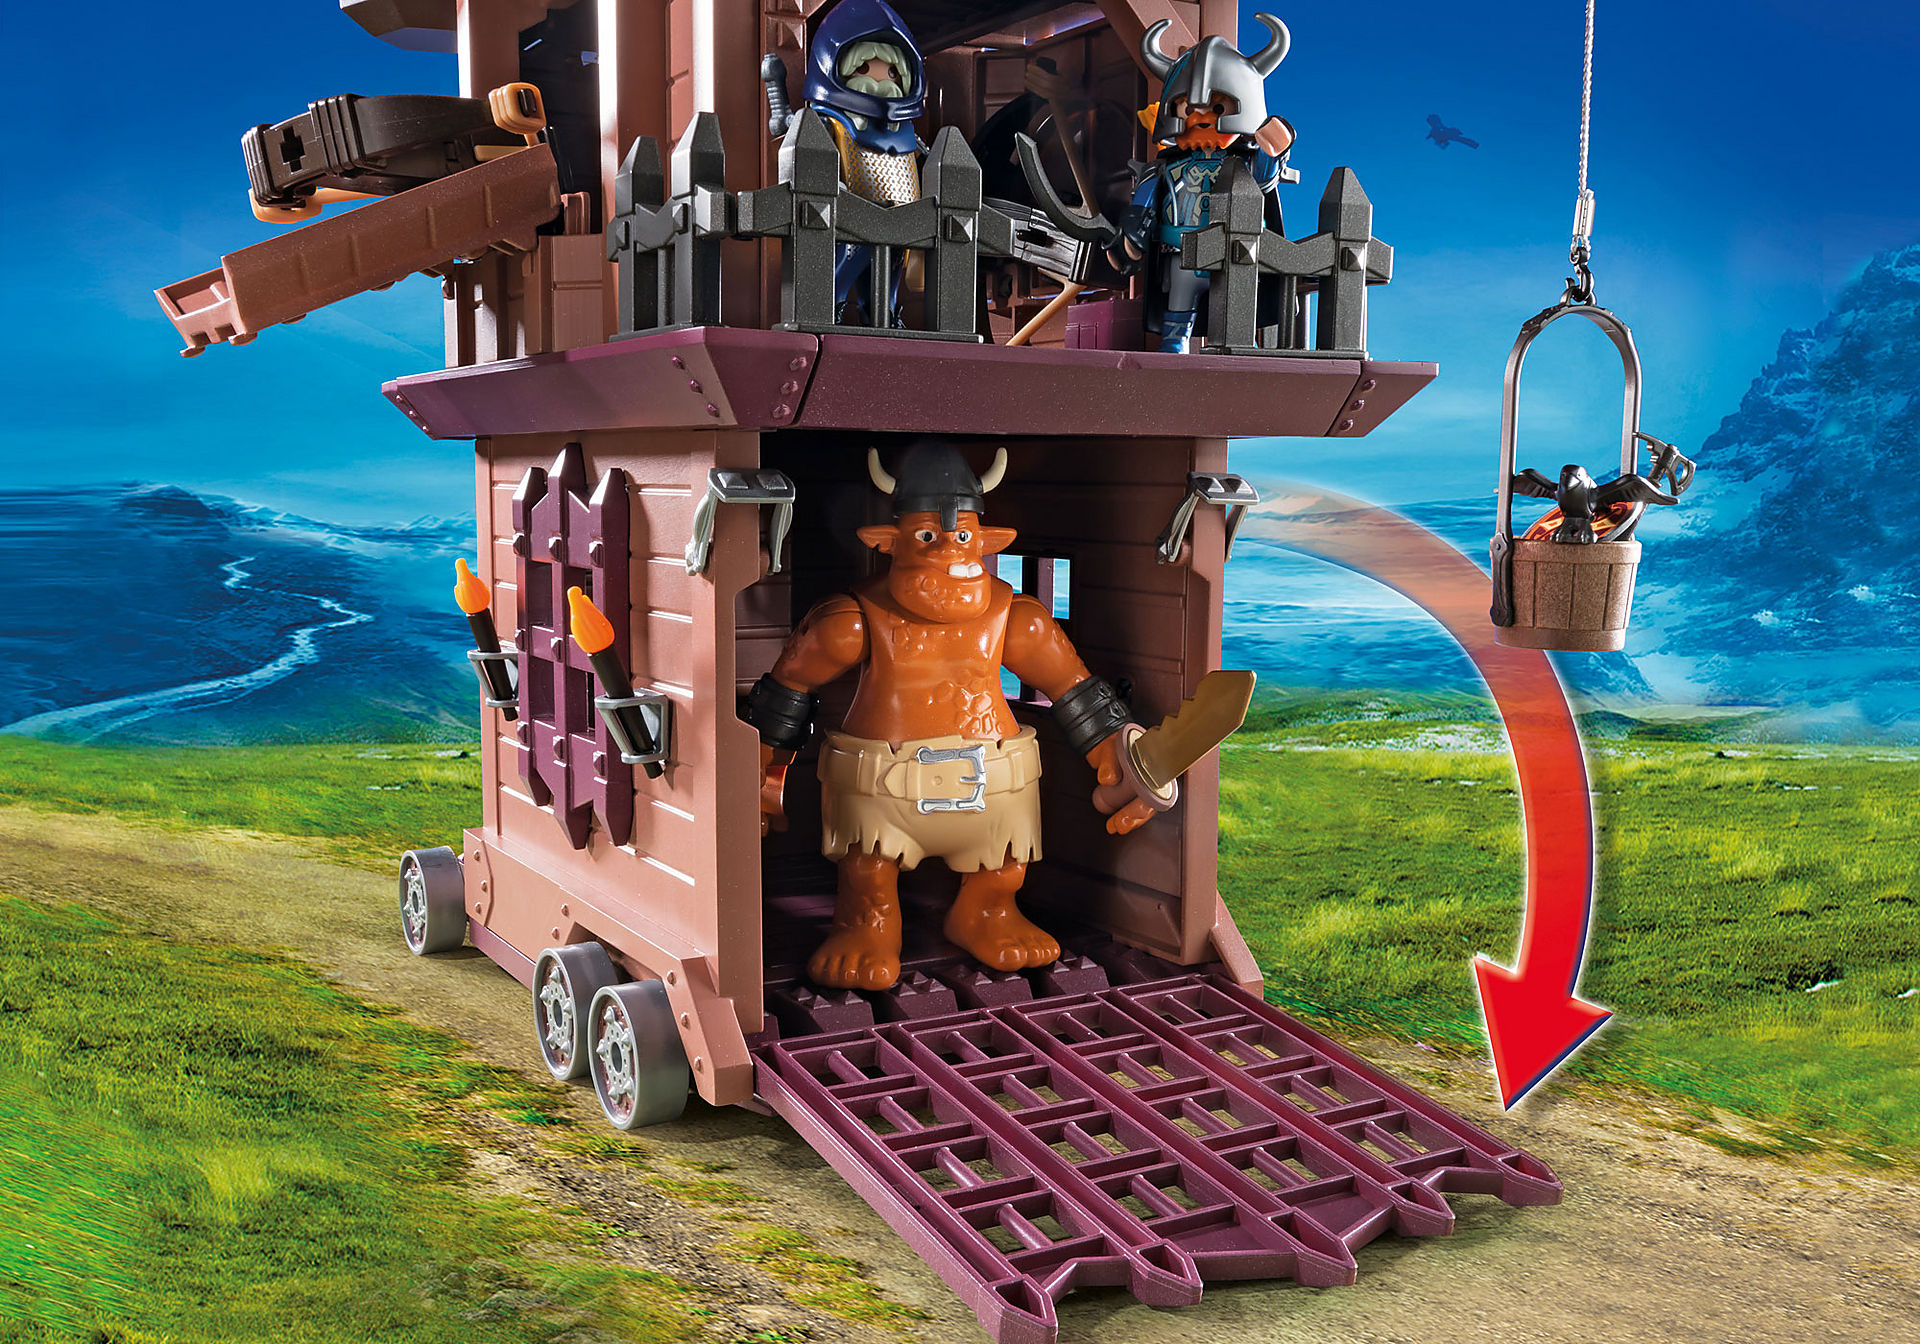 http://media.playmobil.com/i/playmobil/9340_product_extra1/Mobile Zwergenfestung